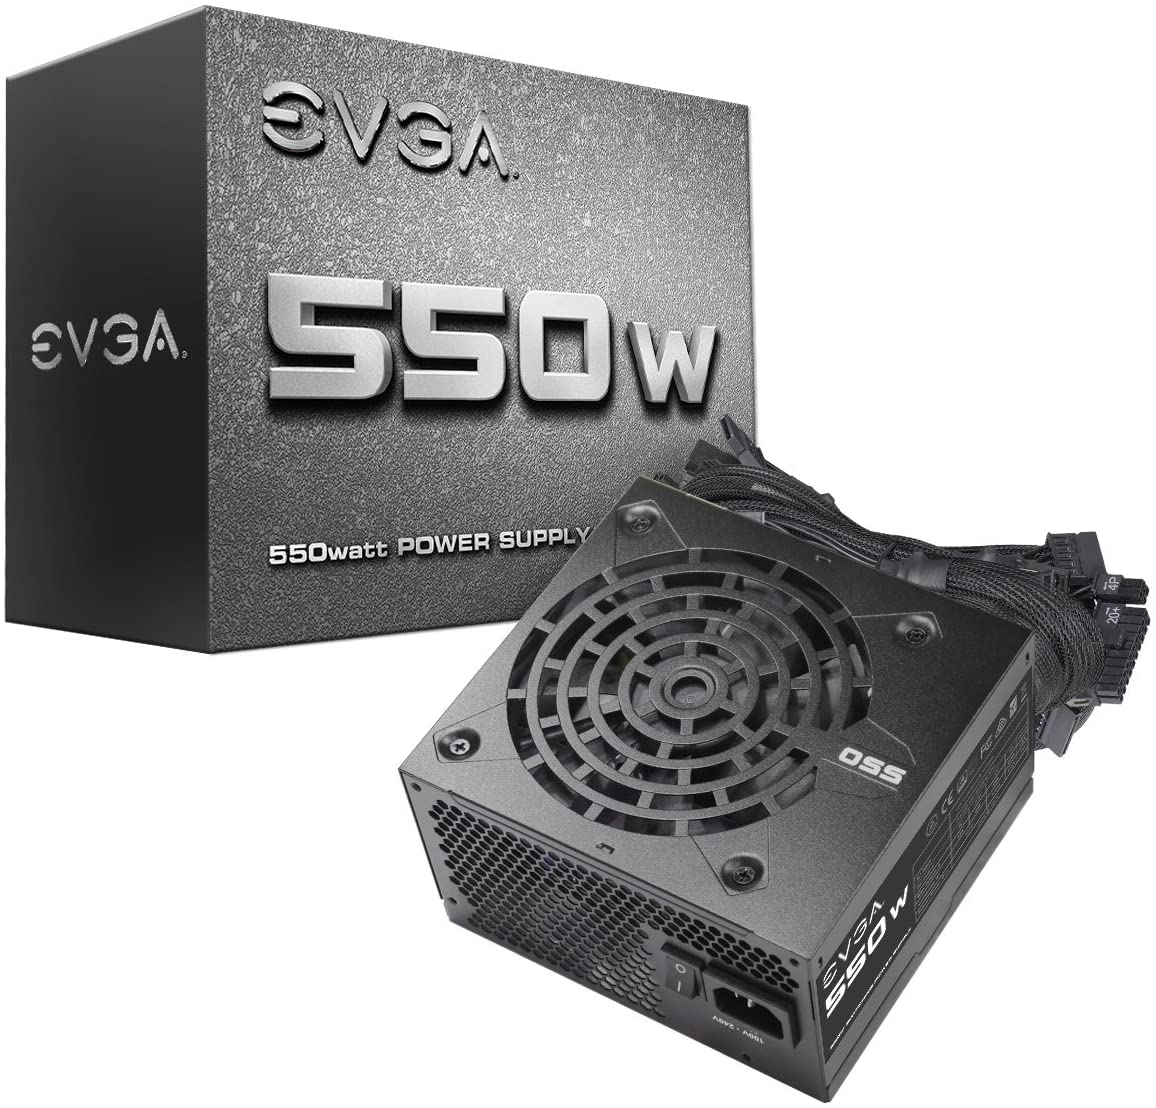 EVGA VCX 08G-P5-3765-KR GeForce RTX 3070 FTW3 GAMING + EVGA PSU 550W + Fractal 40mm Fan COMBO IN STOCK